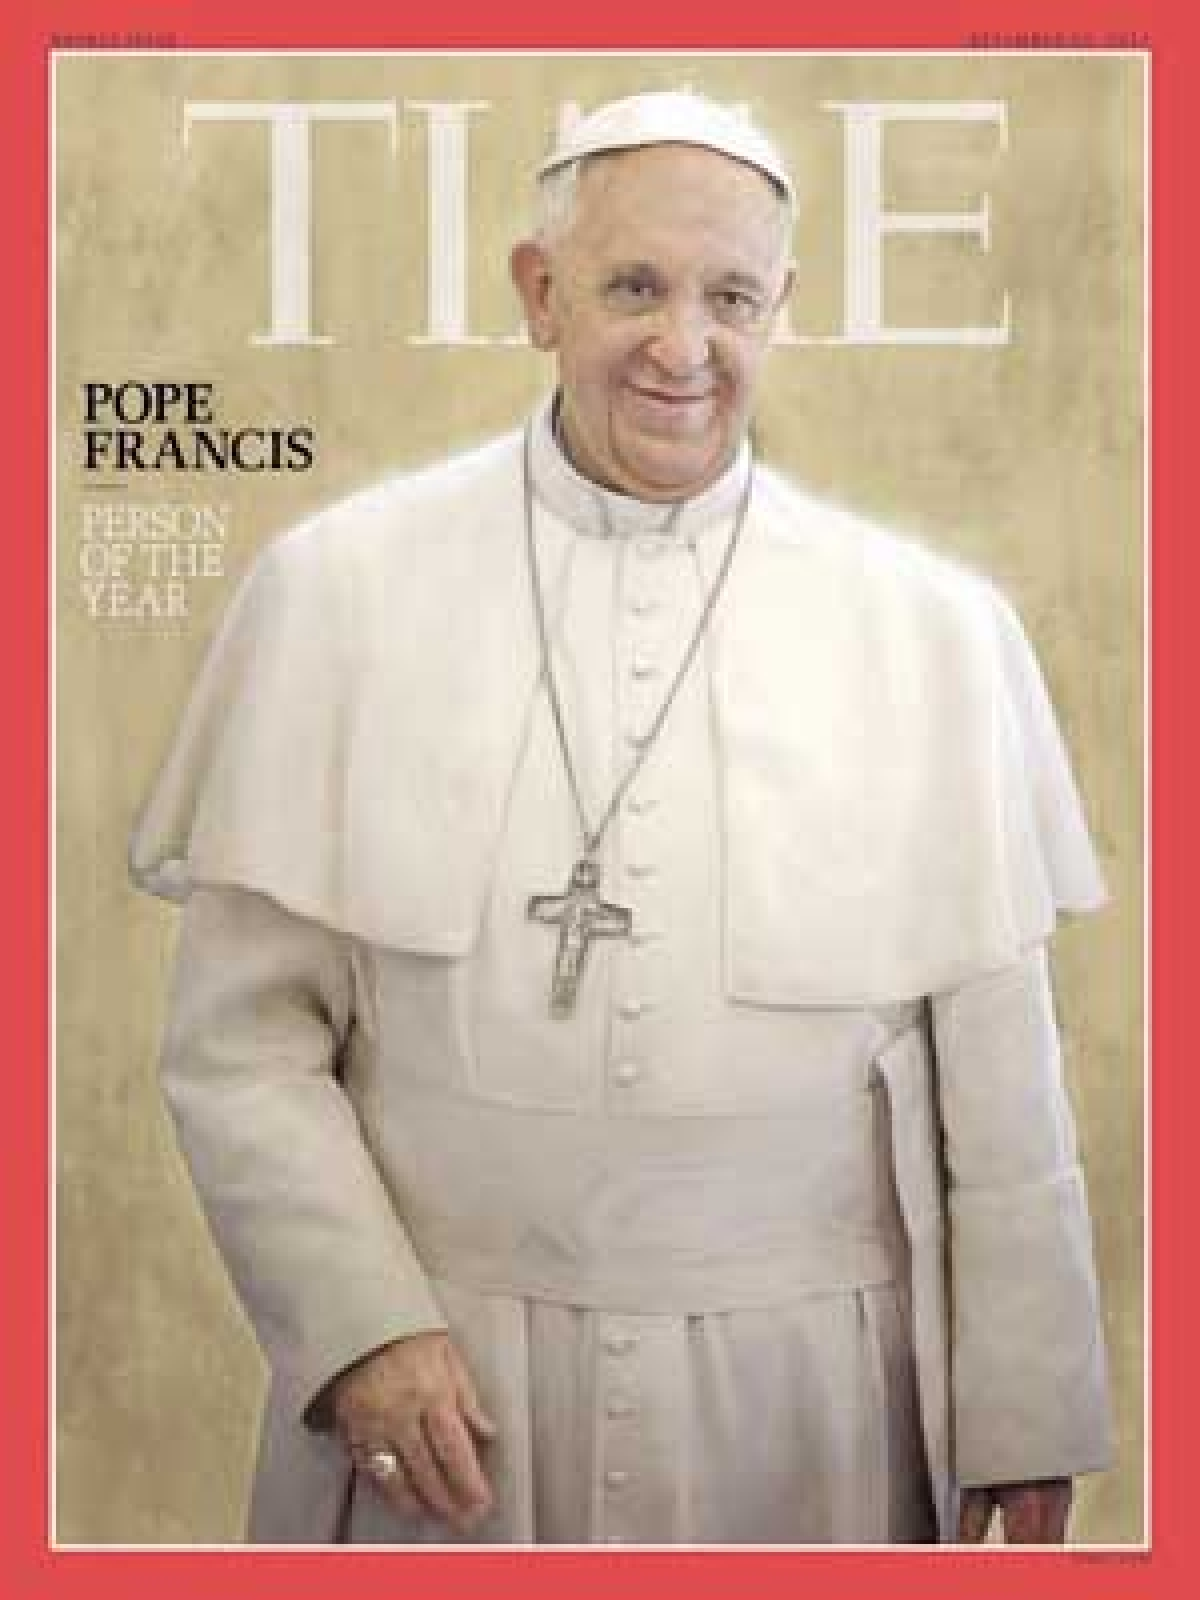 Time magazine names Pope Francis Person of the Year